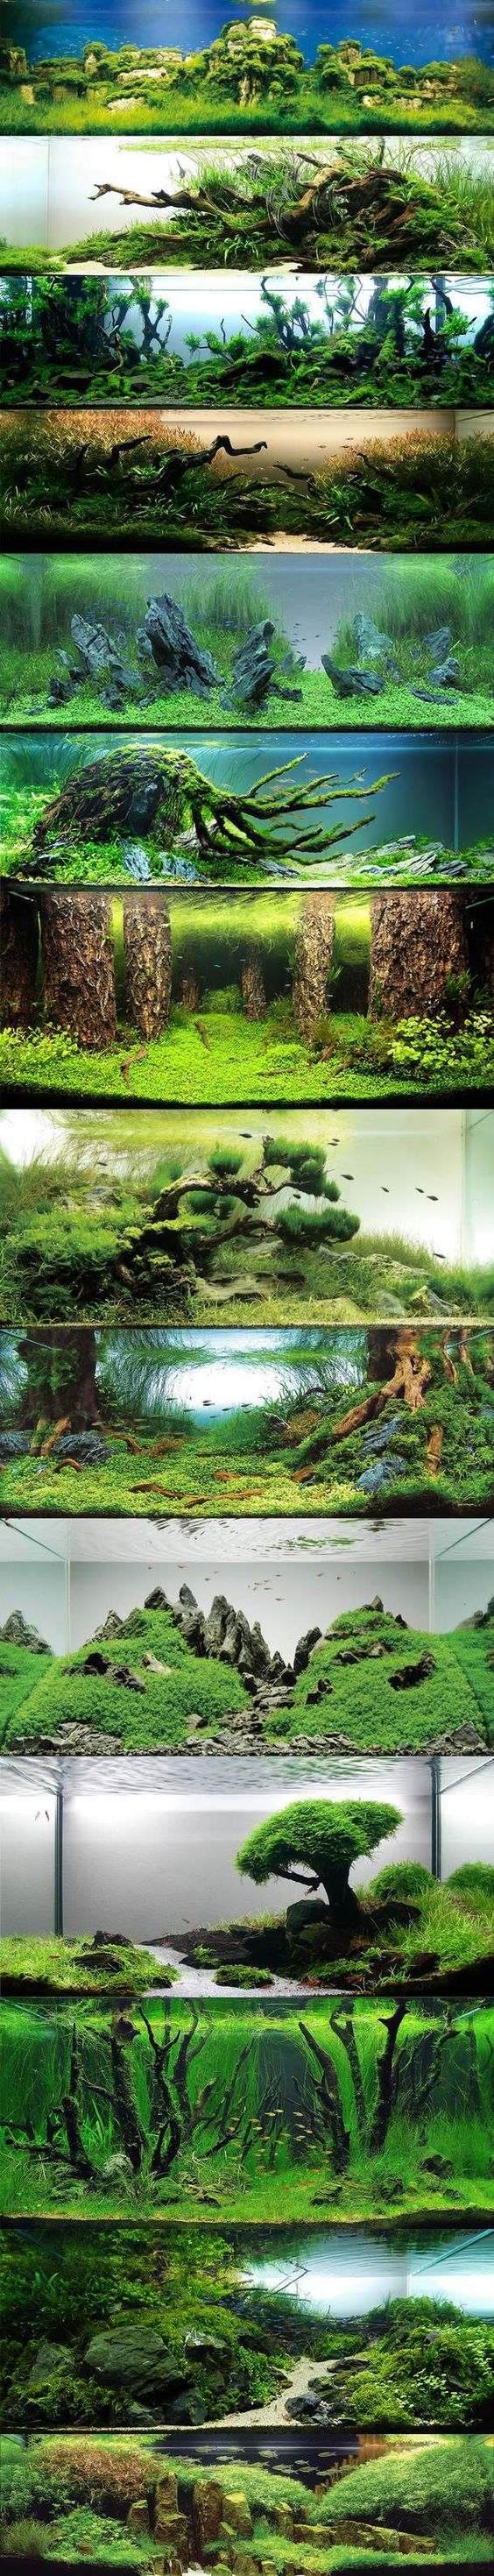 Aquariums...I am a huge fan of wasting money, power, time and water. Great way�